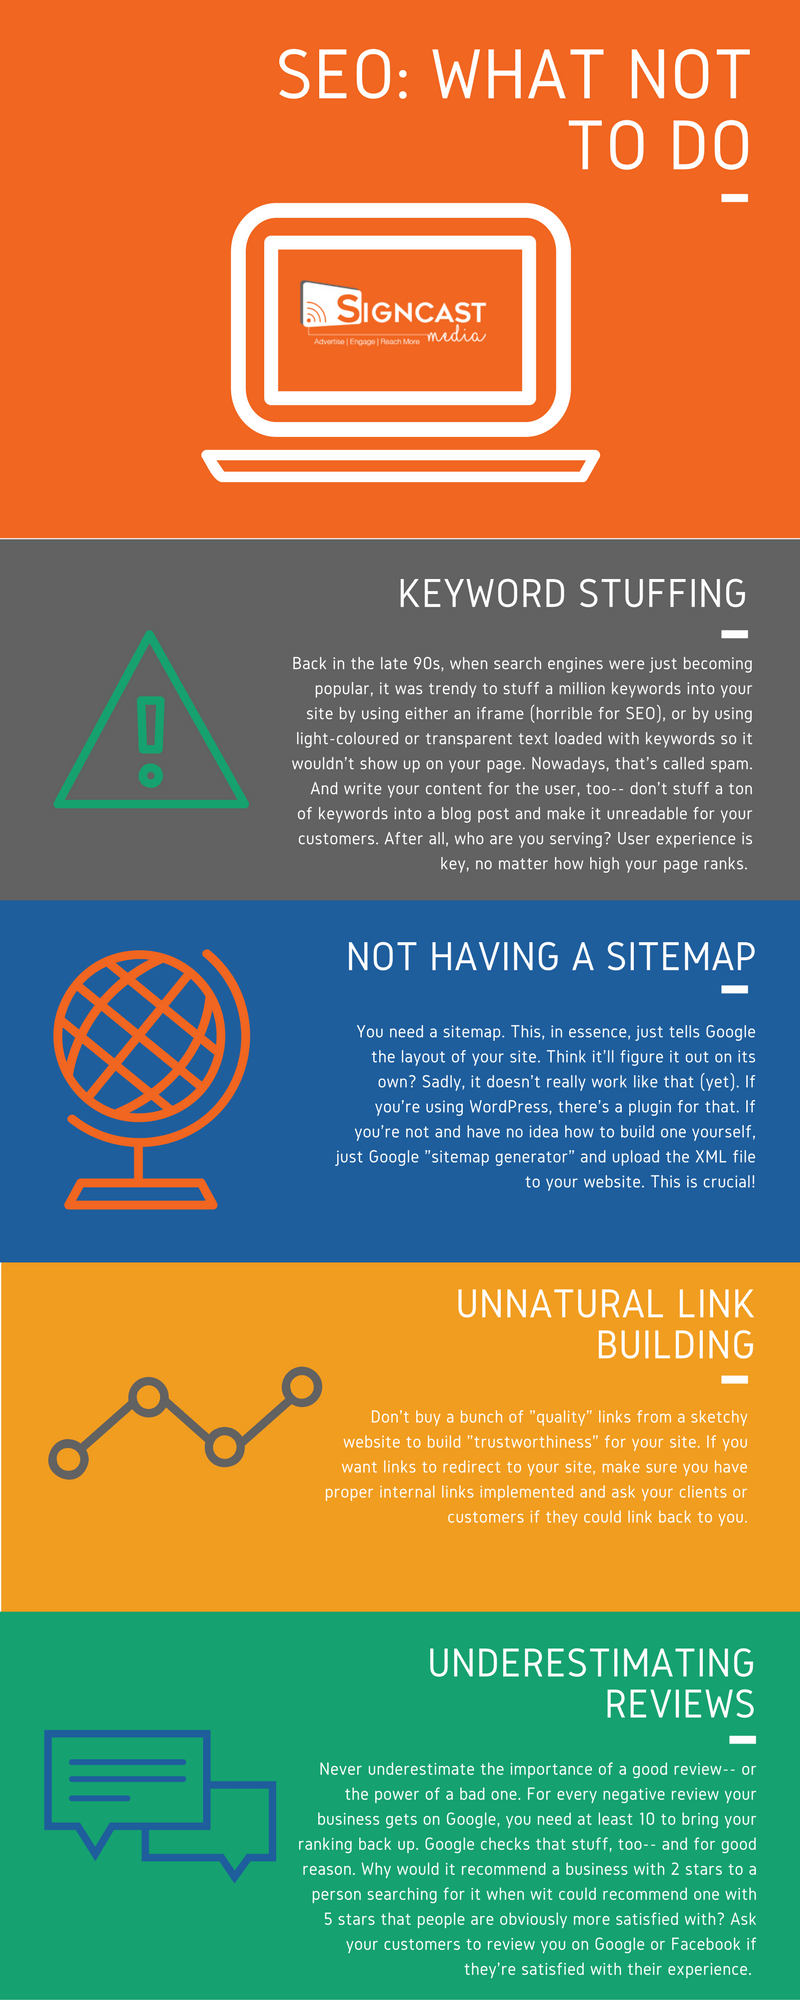 seo bad practices infographic information signcast digital signage